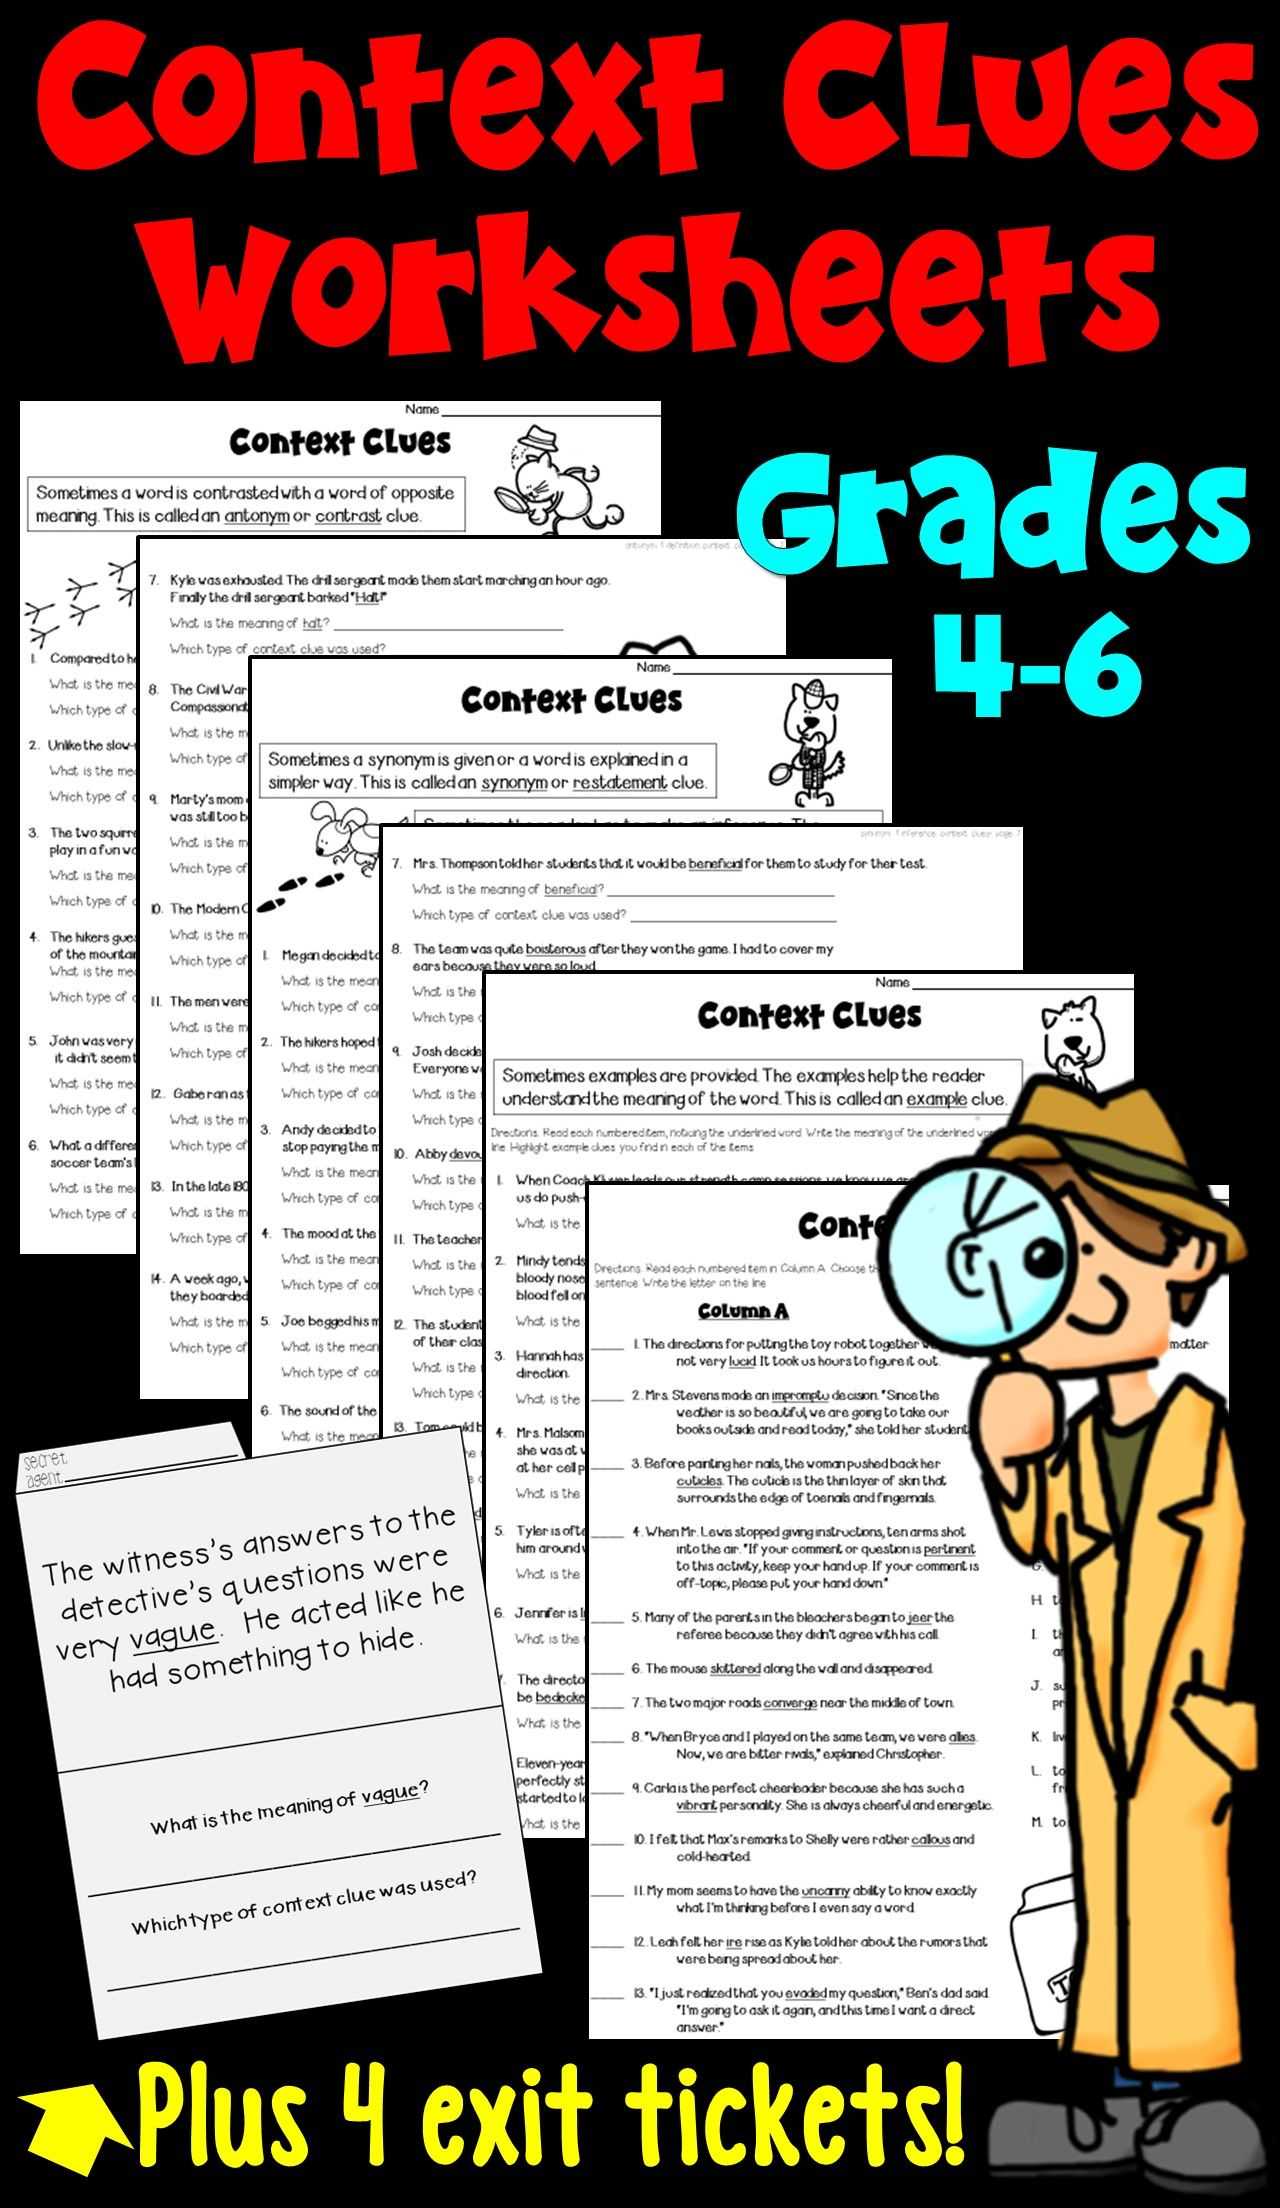 Context Clues Worksheets And Exit Tickets Focusing On 5 Types Of Clues